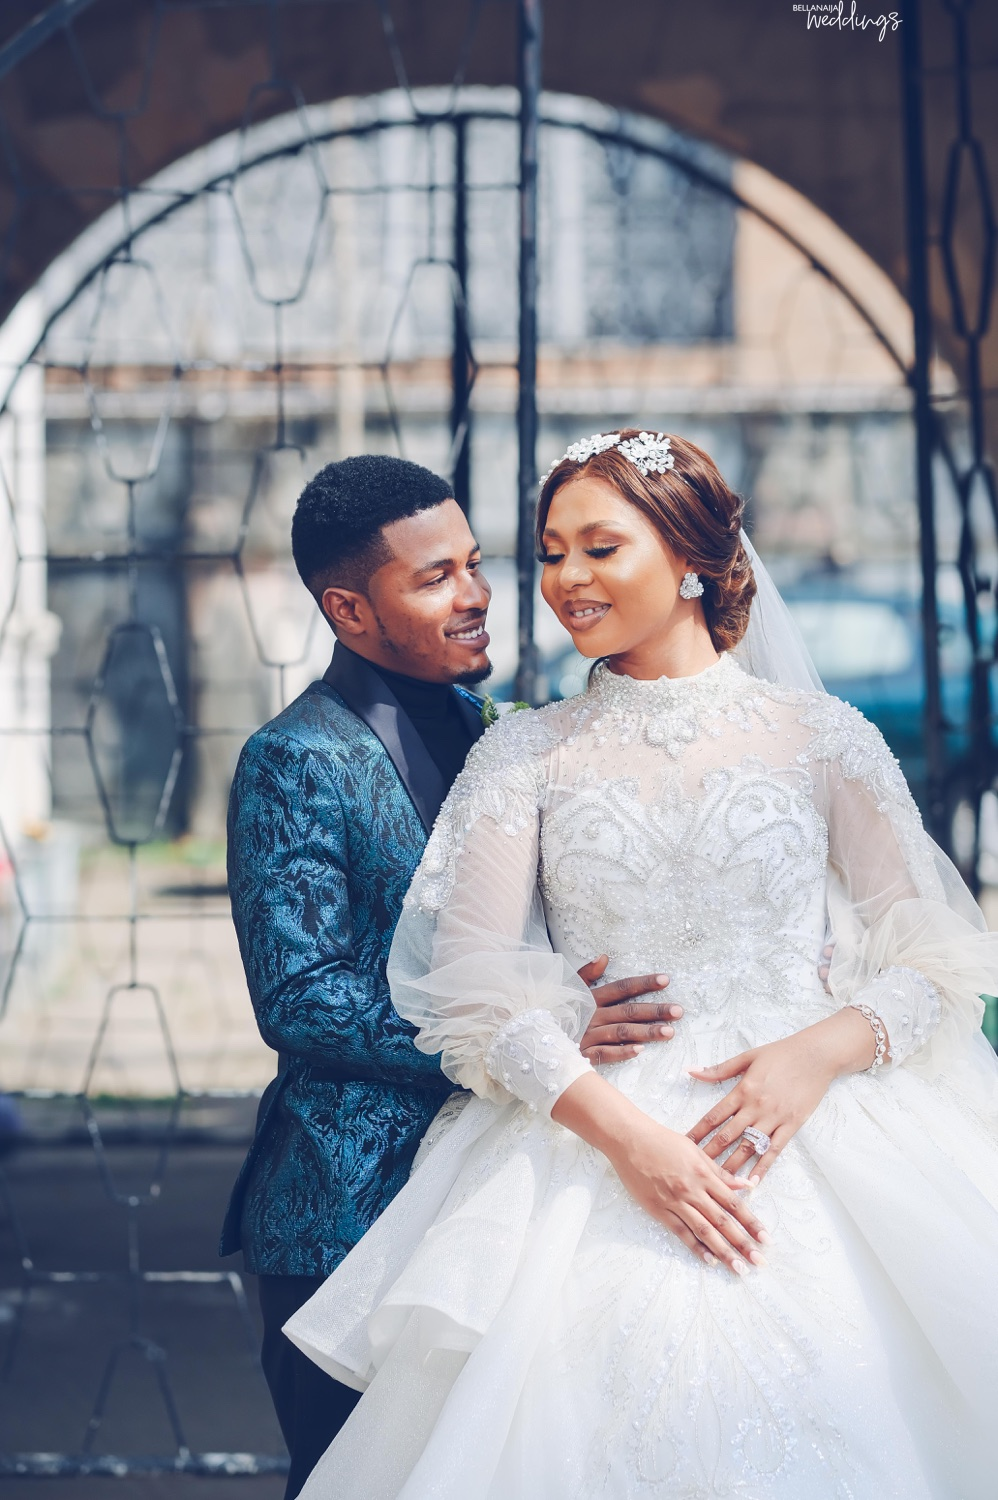 She Got A Photo and Then More! You've Got to Love Sandra Adanna & Samuel Ajibola's White Wedding